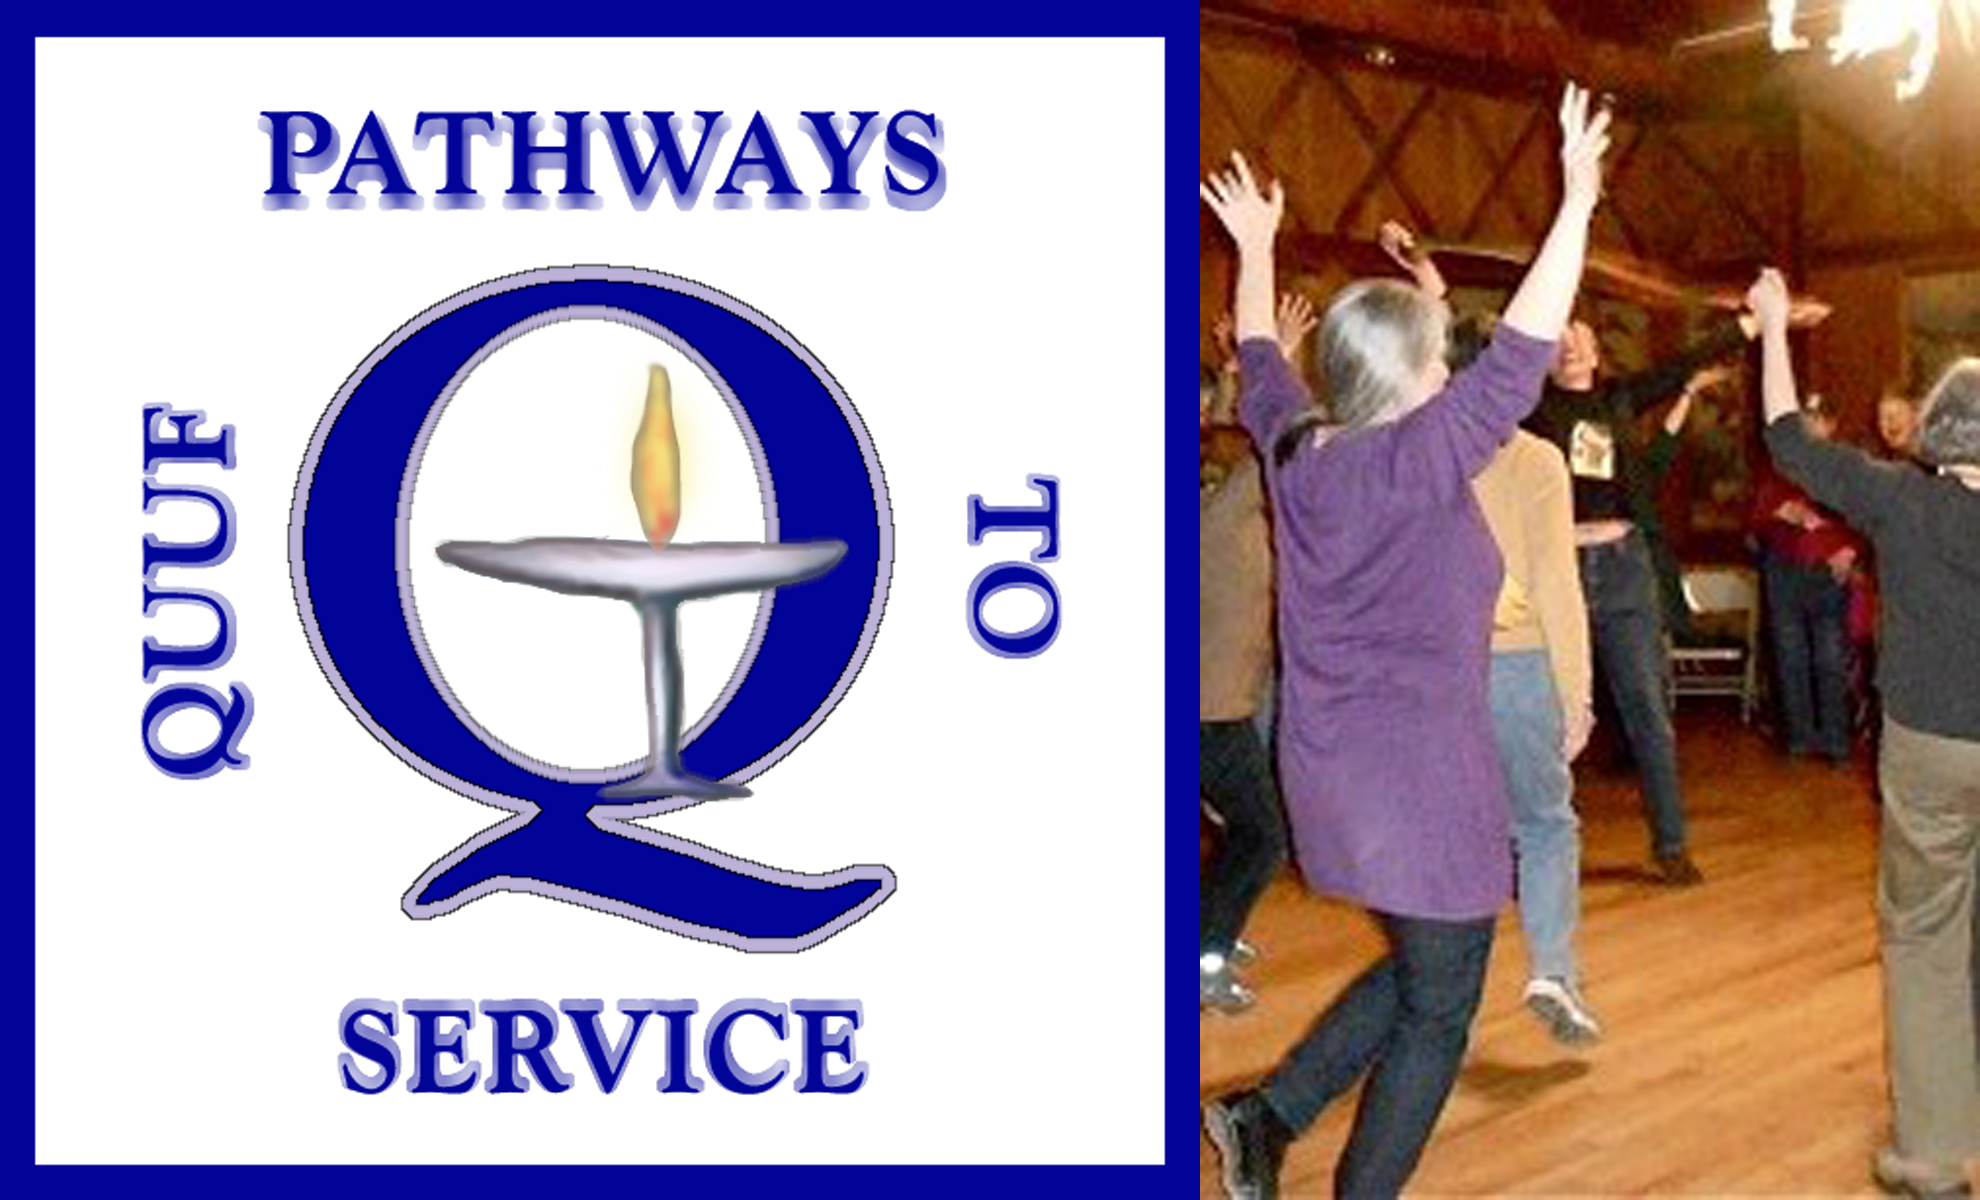 April 9, 9:15 & 11:15 - Pathways to Service